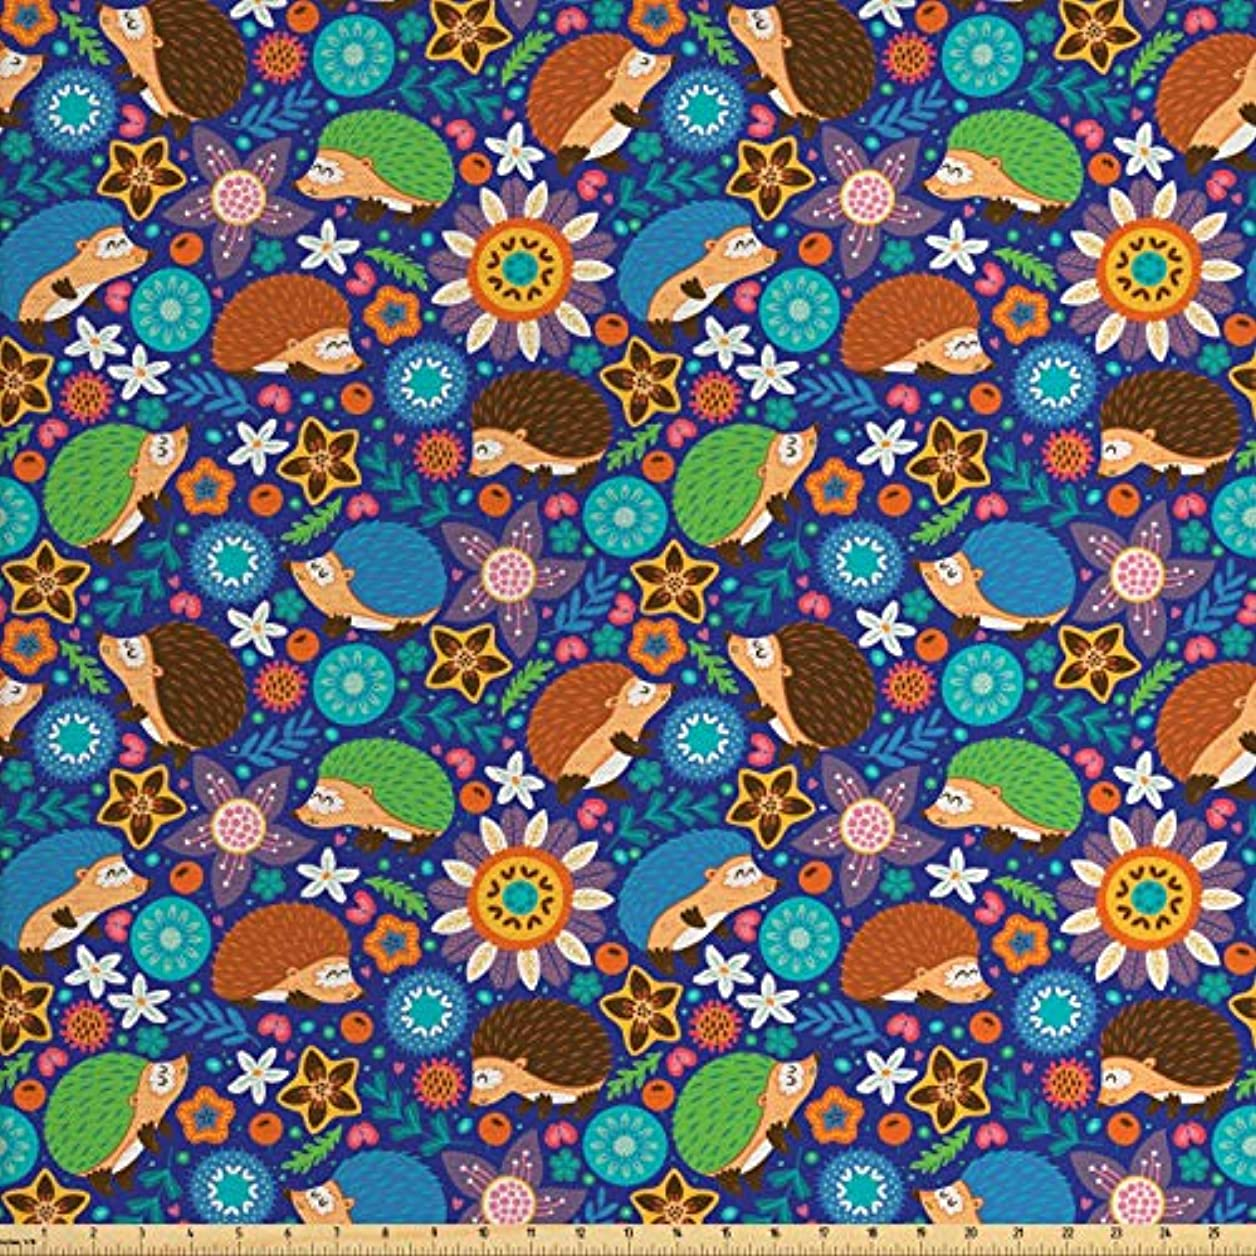 Lunarable Animal Fabric by The Yard, Cute Cartoon Hedgehogs Living in Fantasy Forest Pattern with Flowers Branches Leaves, Decorative Fabric for Upholstery and Home Accents, 1 Yard, Multicolor cjhjshmrsvwvrzih